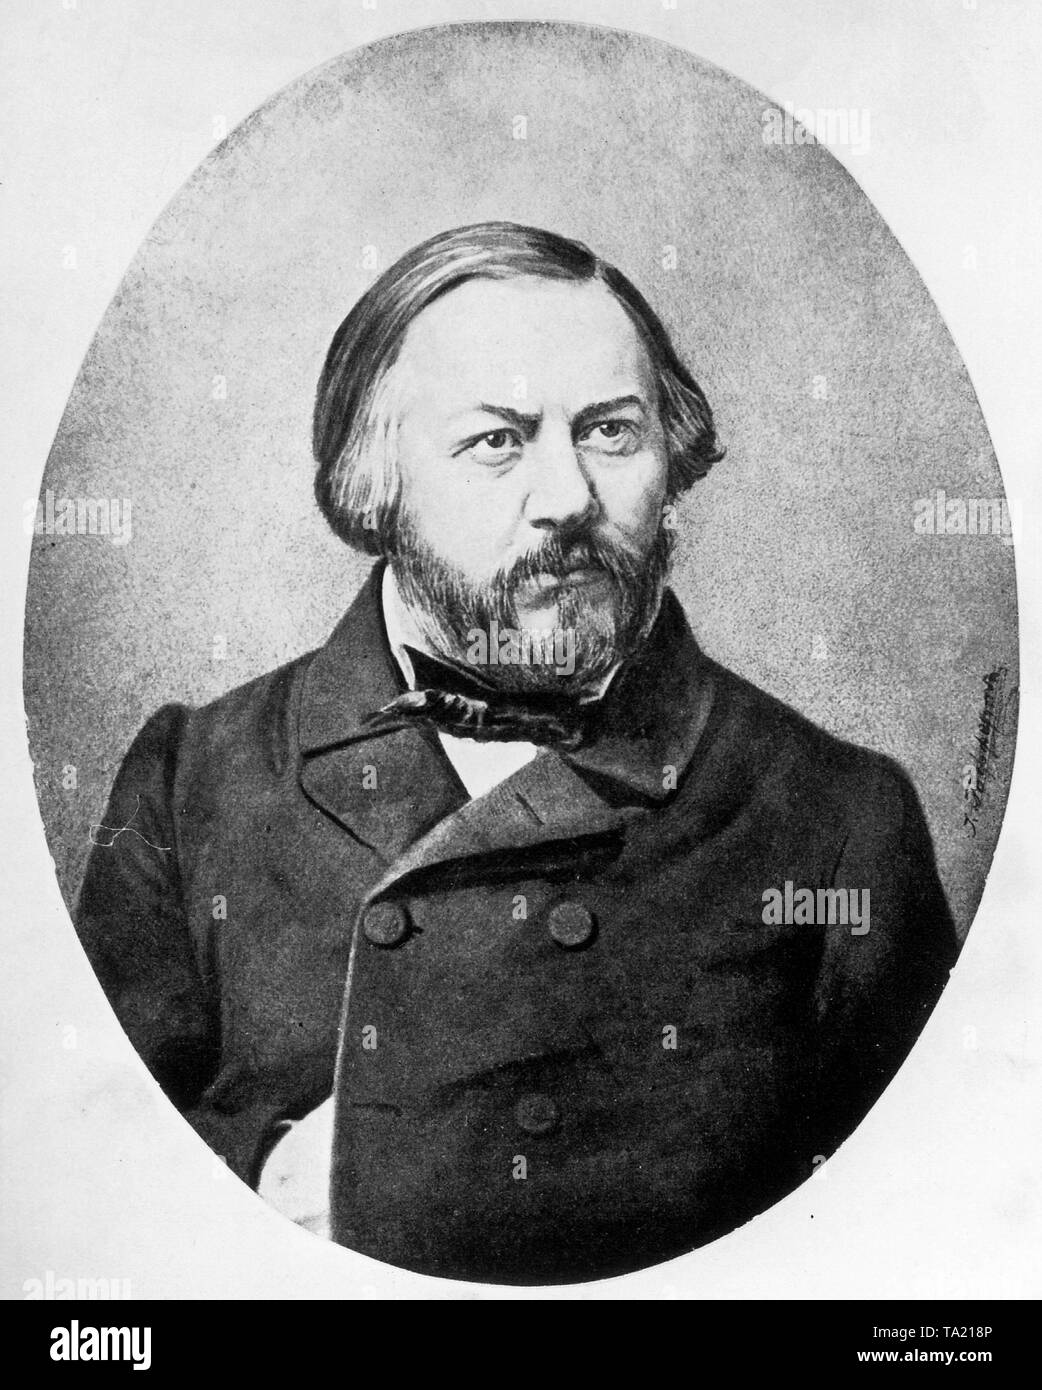 Portrait of Russian composer Mikhail Glinka (1804-1857) - Stock Image